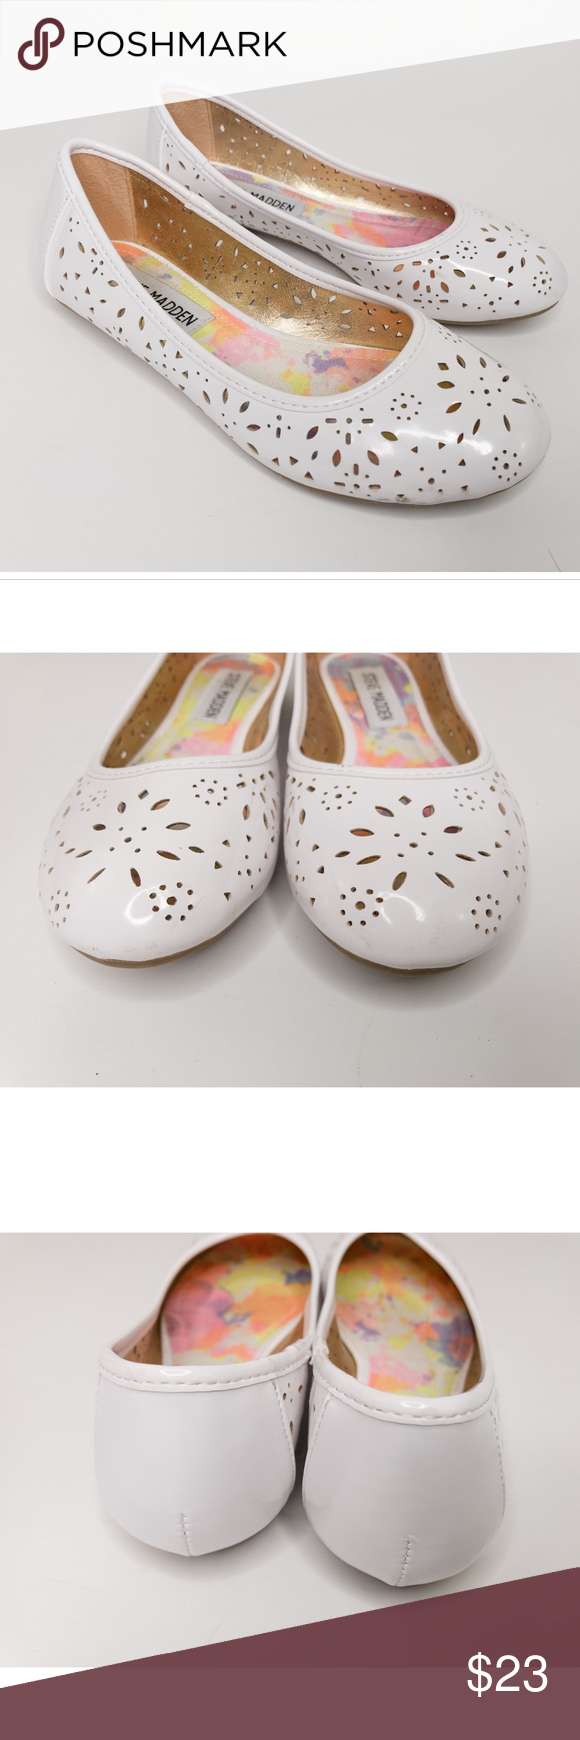 48e490668cc Steve Madden Girls Slip On Ballet Flat Shoes Steve Madden Girls Size 1  White Laser Cut